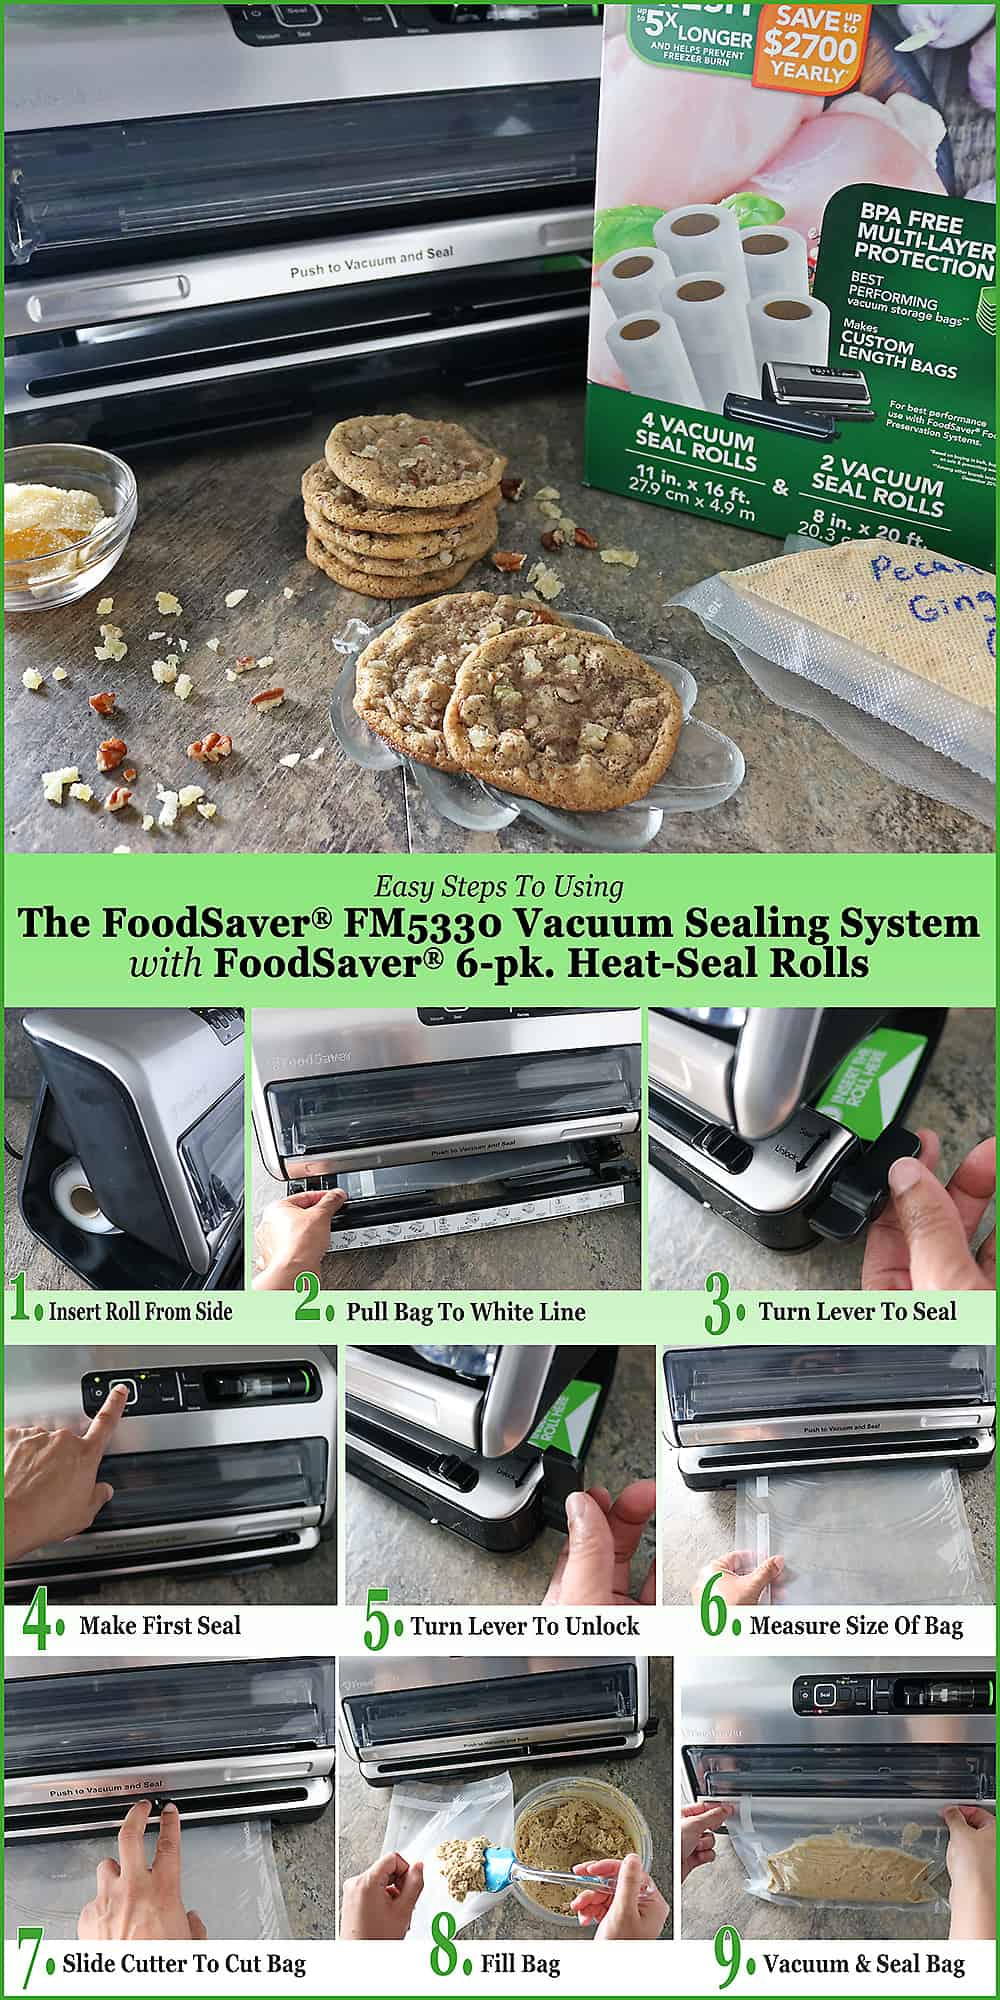 How To Use FoodSaver FM5330 Vacuum Sealing System Image